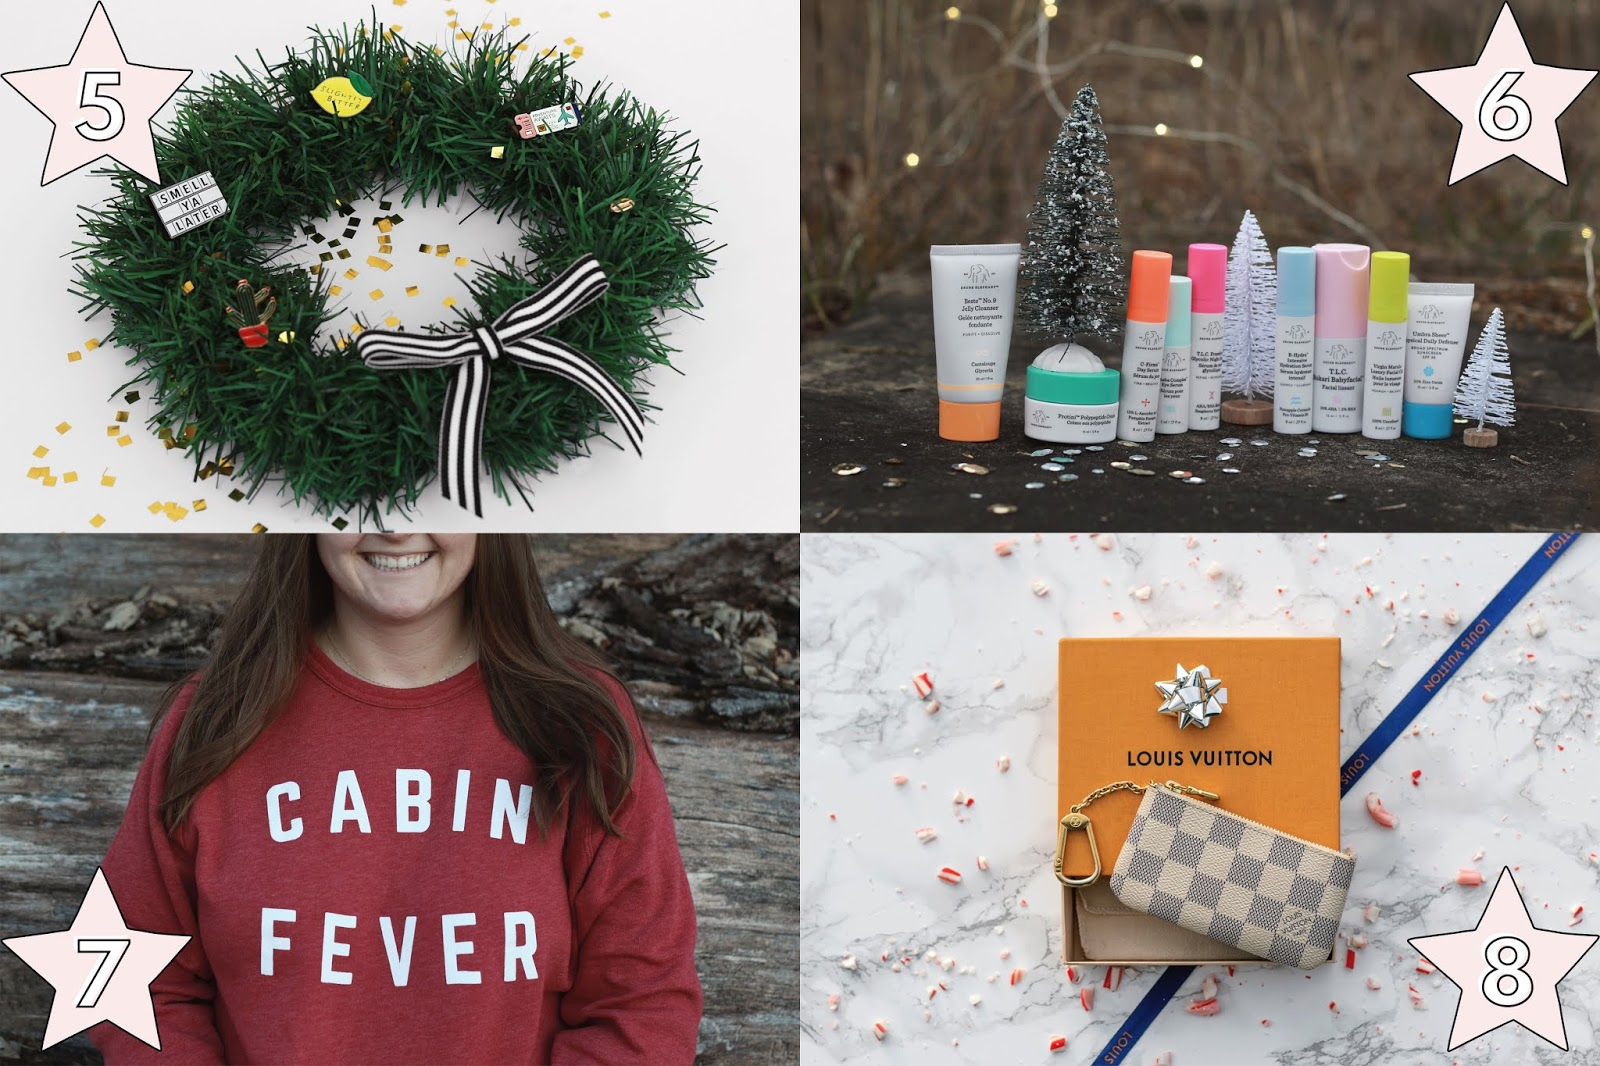 unique holiday gift ideas for her, affordable holiday gift ideas for her, NESW wax co fun enamel pins gift idea for her, Drunk Elephant the Littles gift idea for her, Lake Effect Co cabin fever crewneck cozy gift idea for her, louis vuitton keypouch gift idea for her, holiday christmas gift ideas for her